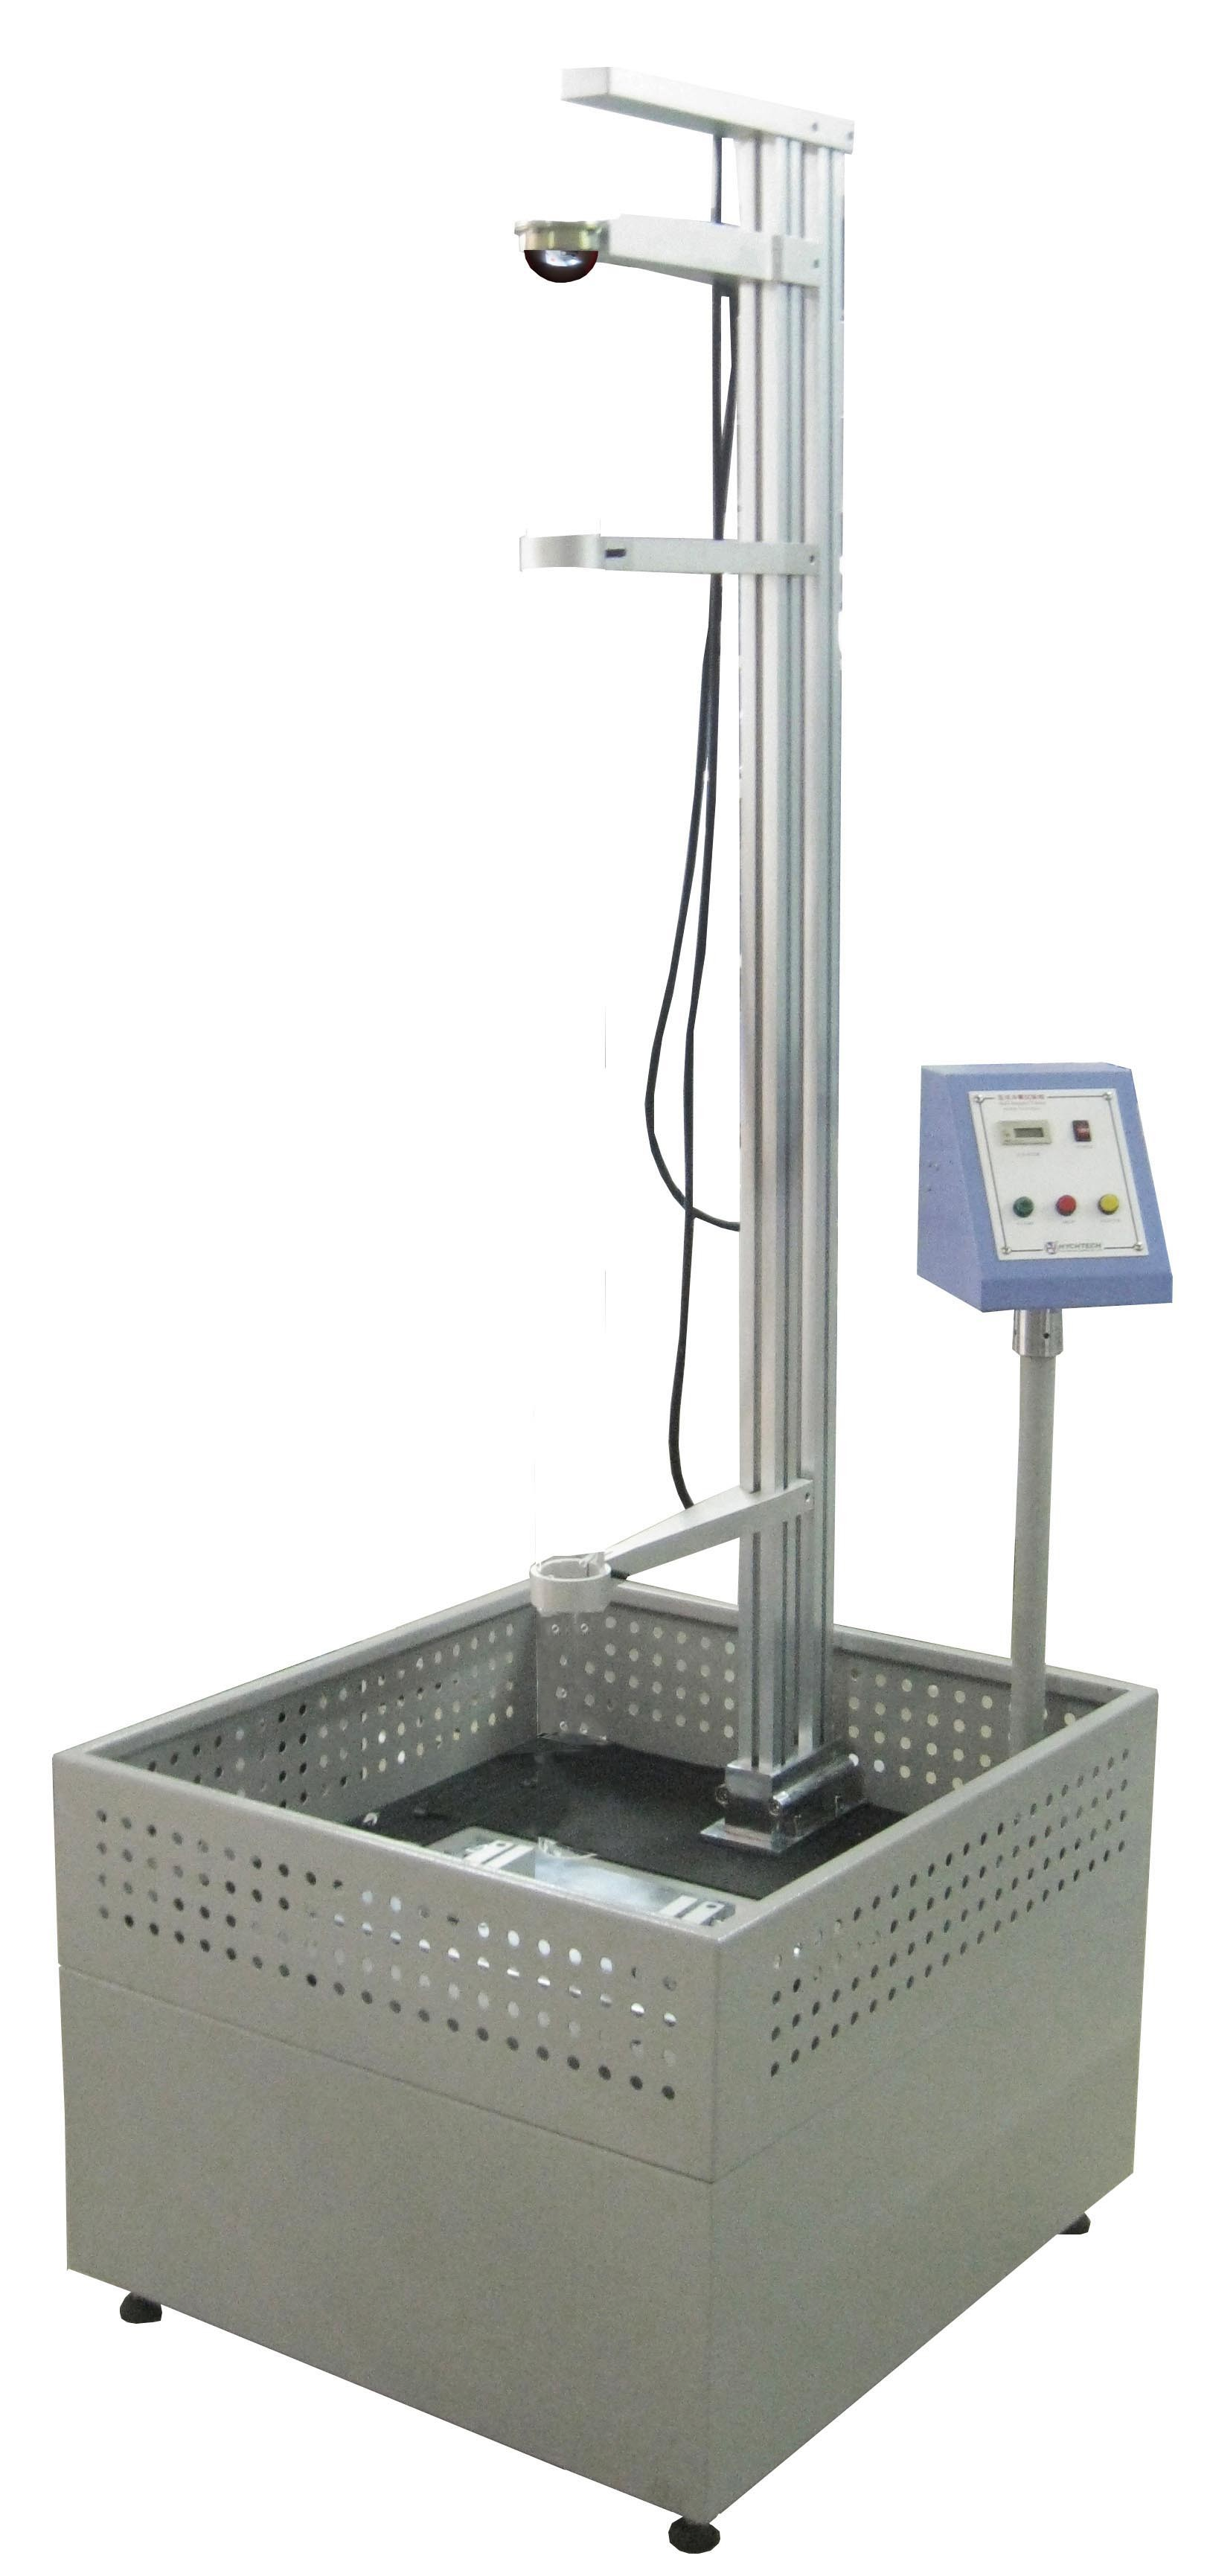 Plastic Impact Resistance Tester / ISO 180 Impact Test For Plastics